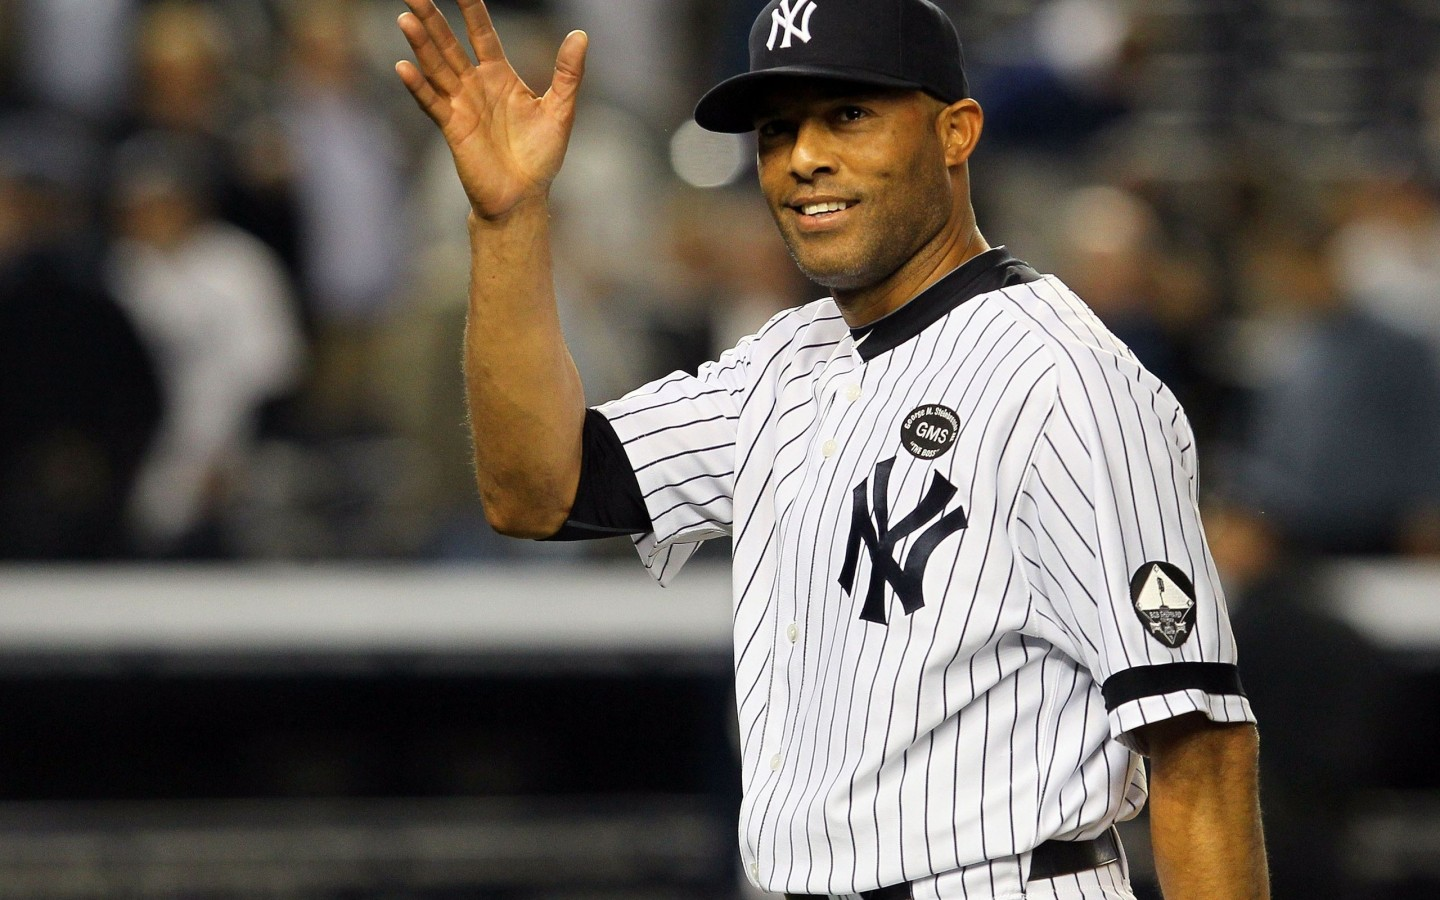 MLB-New-York-Yankees-Mariano-Rivera-baseball-pitcher-wallpaper